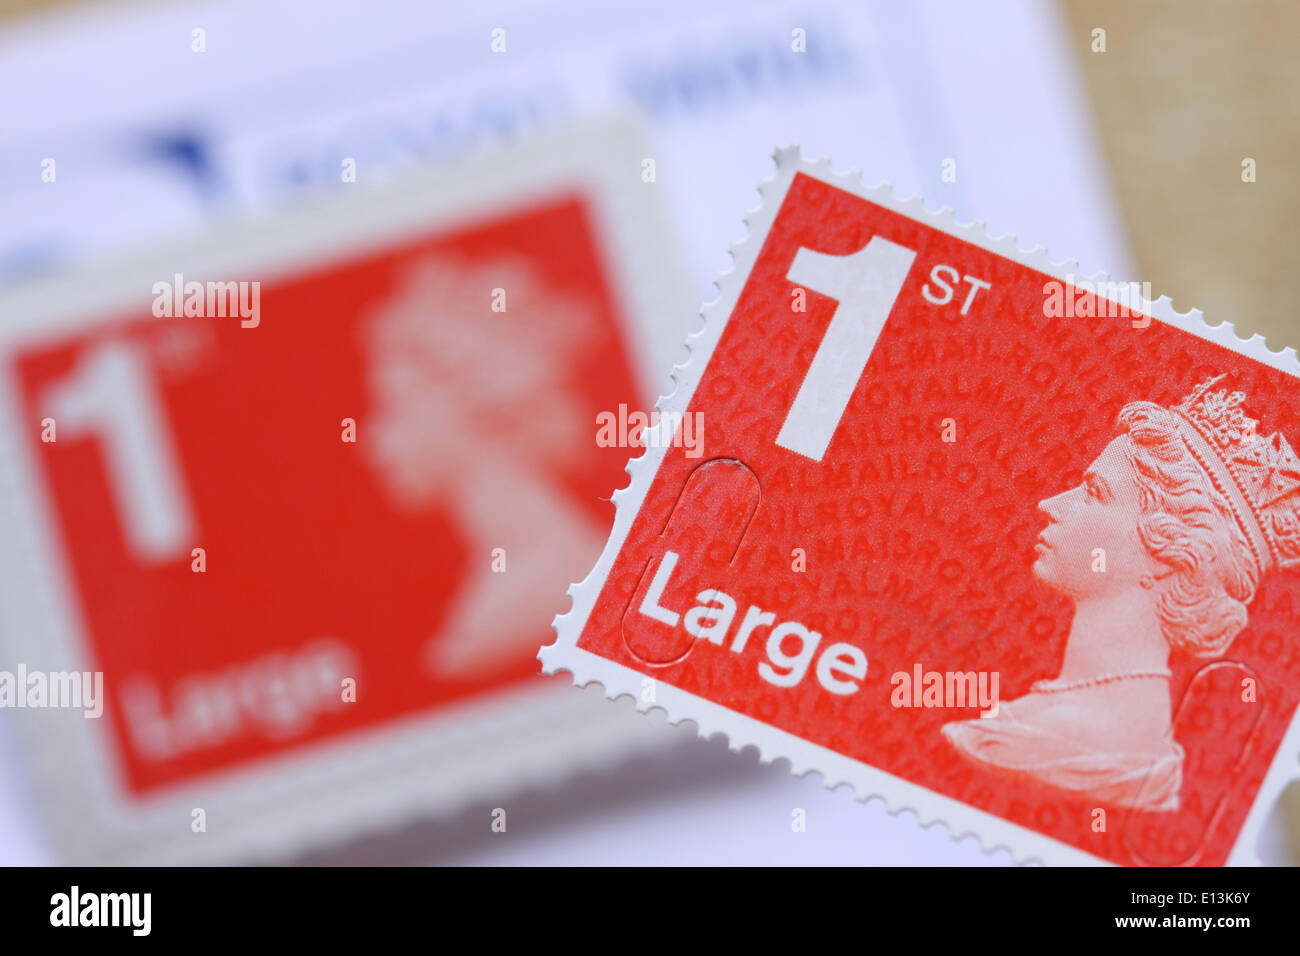 Royal Mail large 1st class postage stamp UK - Stock Image